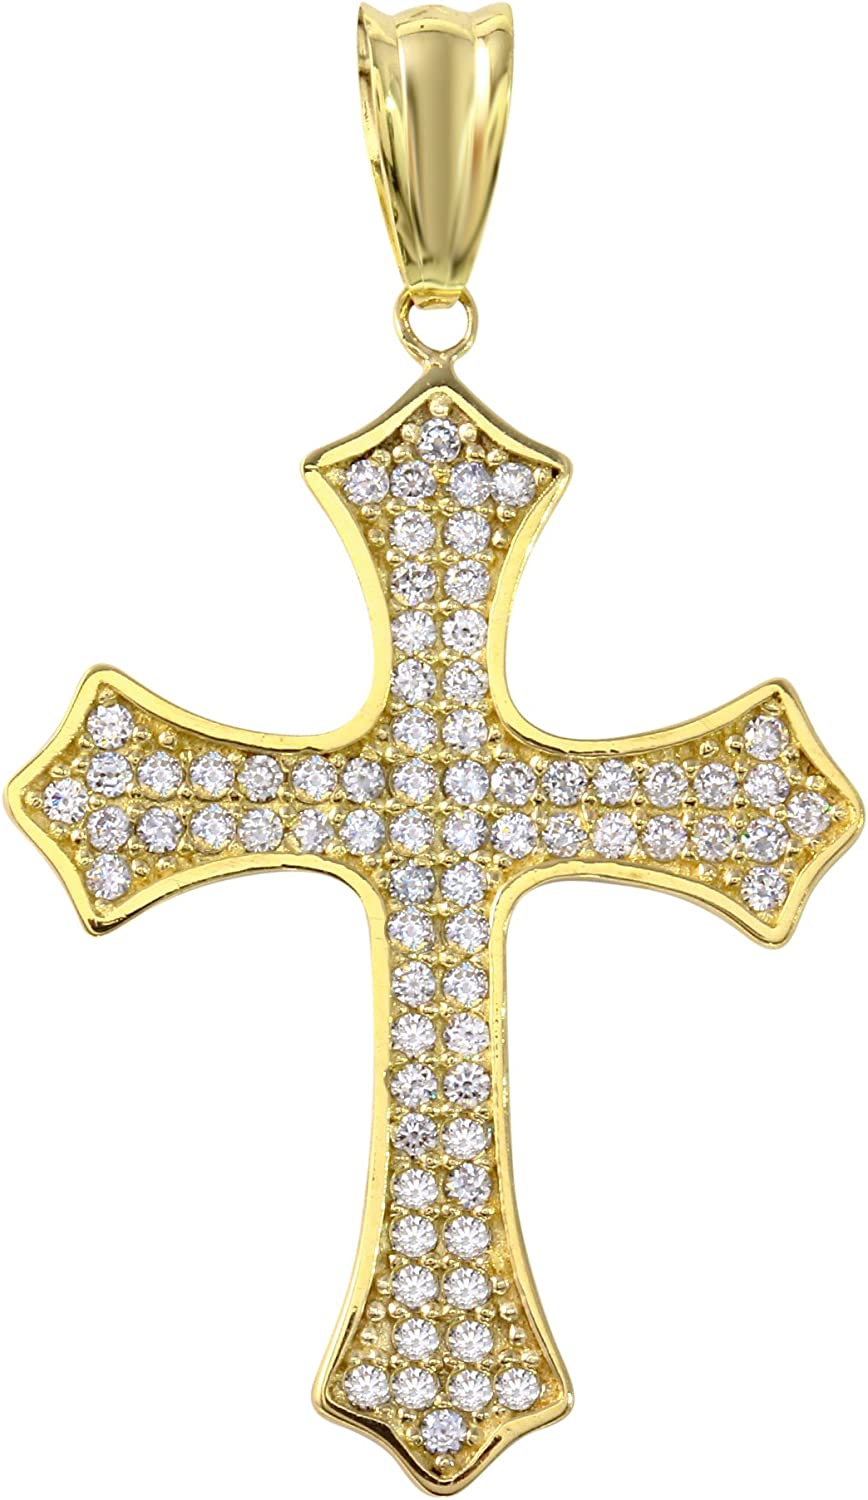 JewelryAmerica 14k White Gold Textured Eastern Orthodox Cross Charm Pendant Necklace